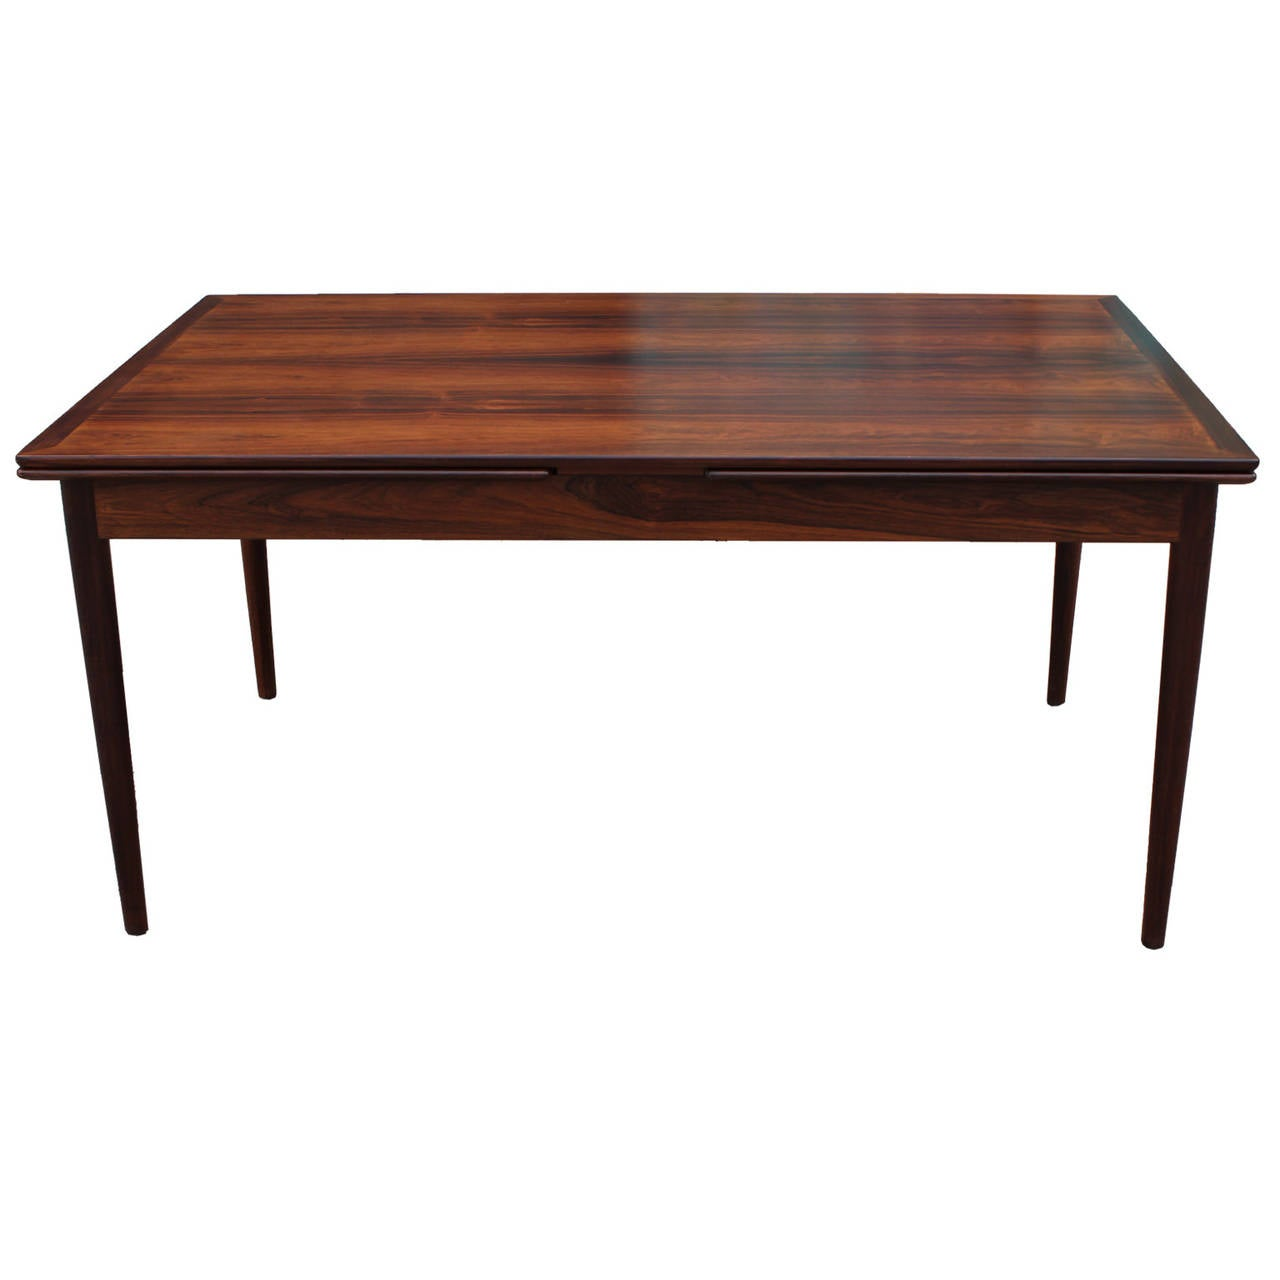 Gorgeous Danish Rosewood Extendable Dining Table Moller at  : diningtable2l from www.1stdibs.com size 1280 x 1280 jpeg 52kB